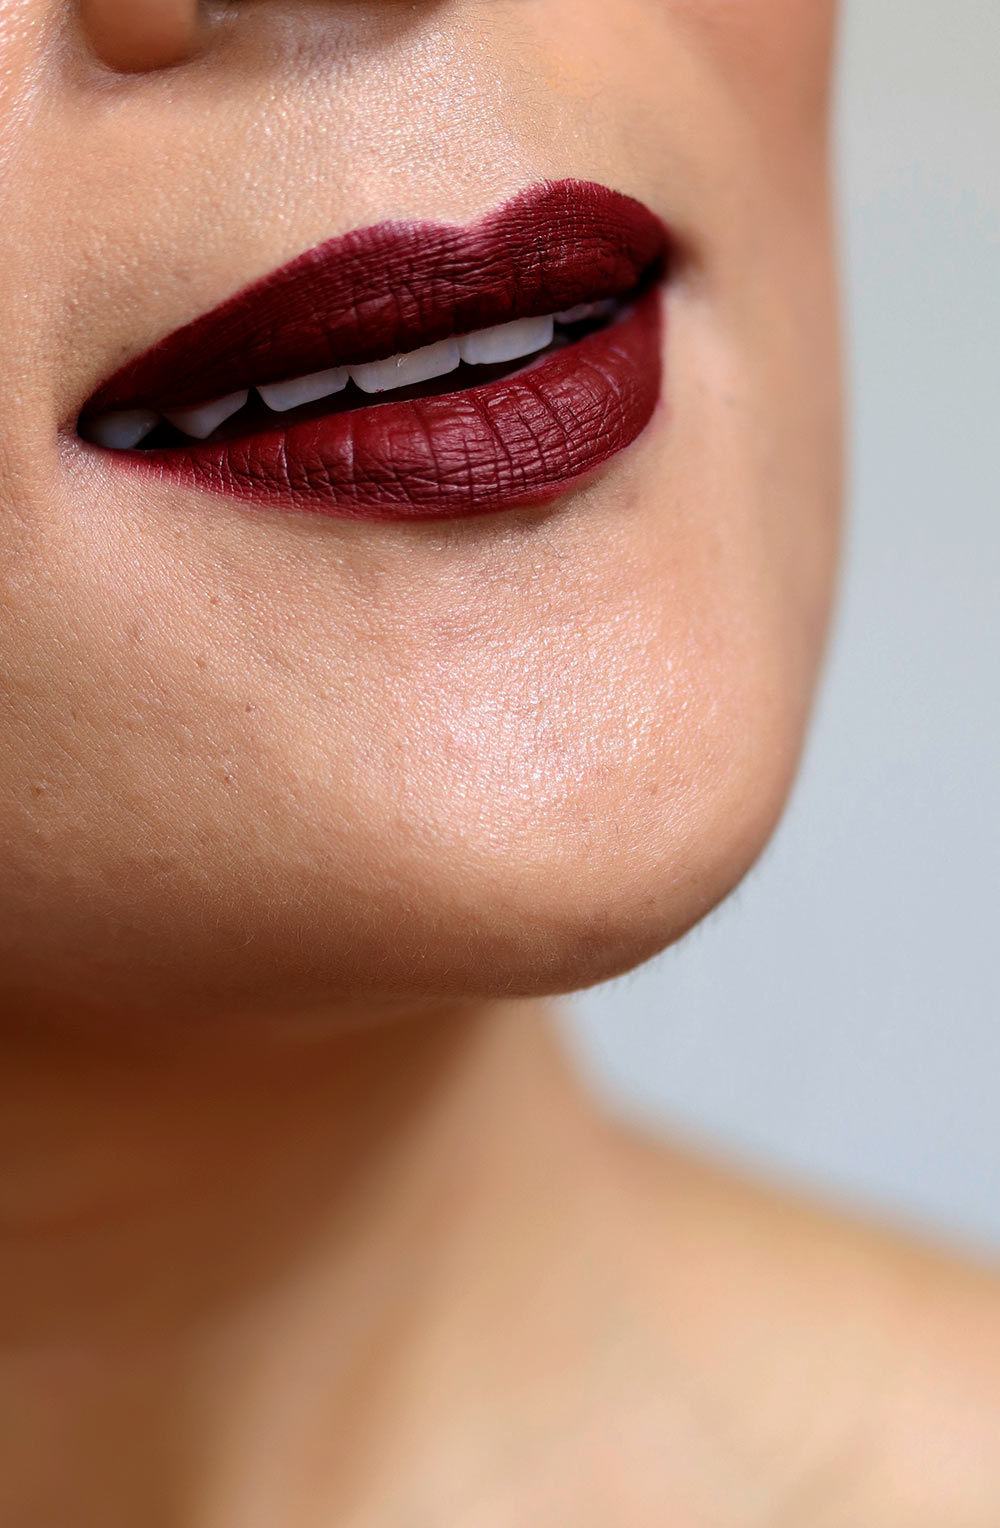 Day 5: Blackened Red Lips With